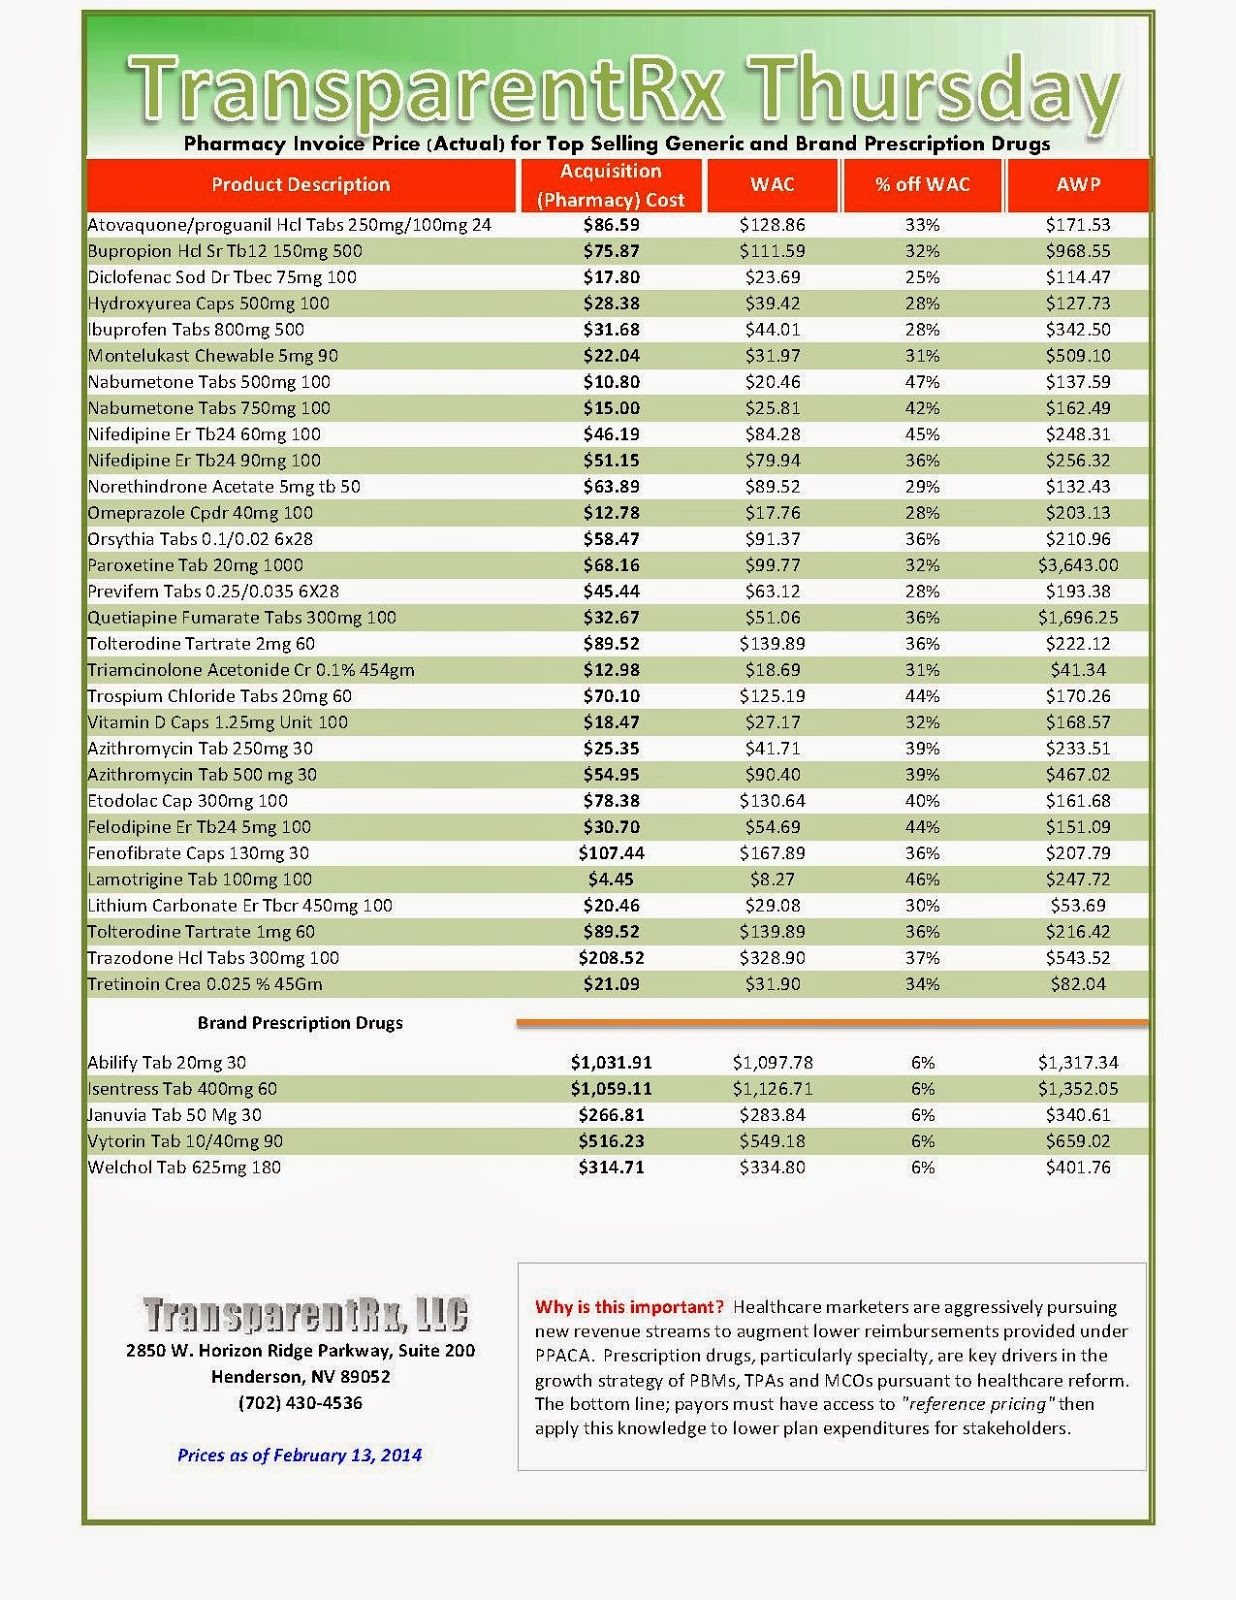 the payer39s guide to managing pharmacy costs reference pricing invoice price means